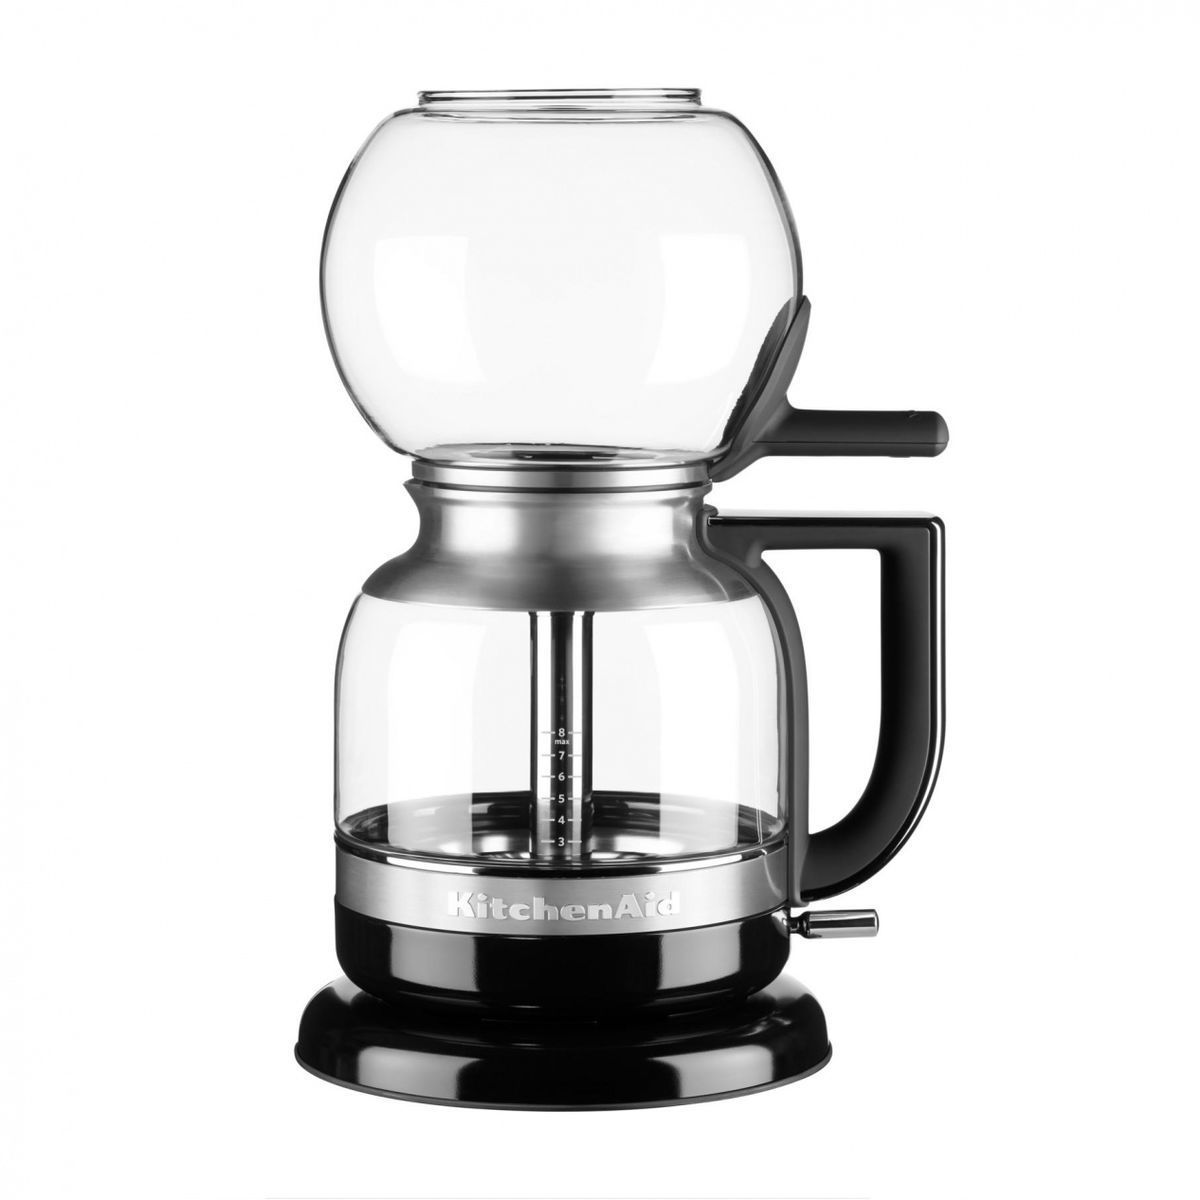 Artisan 5kcm0812ob Siphon Coffee Maker Kitchenaid